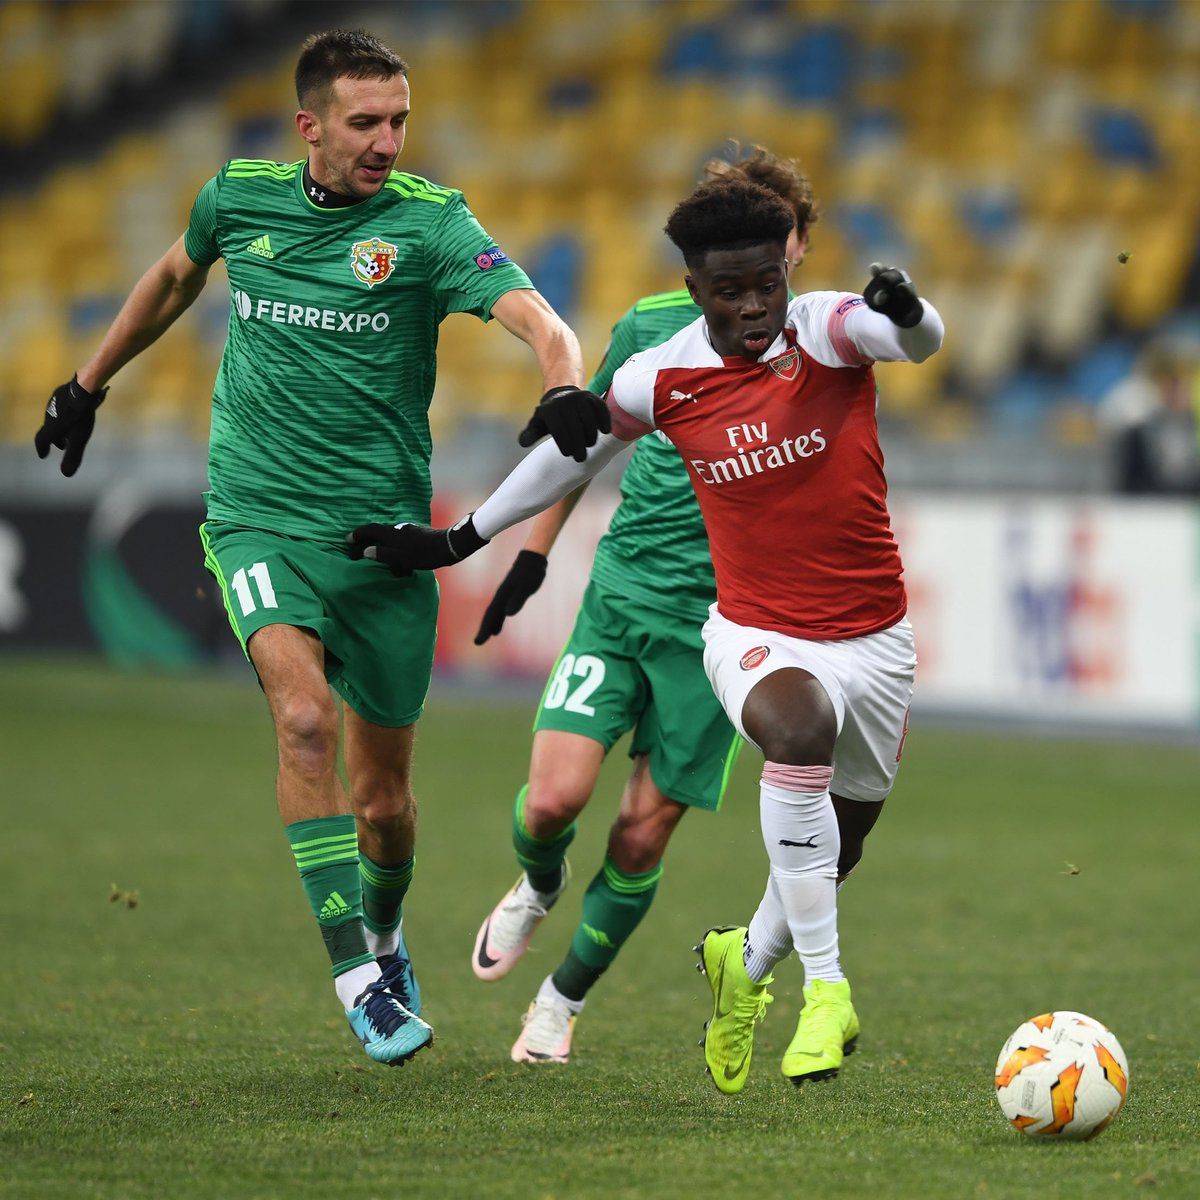 🏴 17 years, two months, 24 days   Bukayo Saka became the 15th youngest ever player to feature for @Arsenal last night 👏  #WeAreTheArsenal